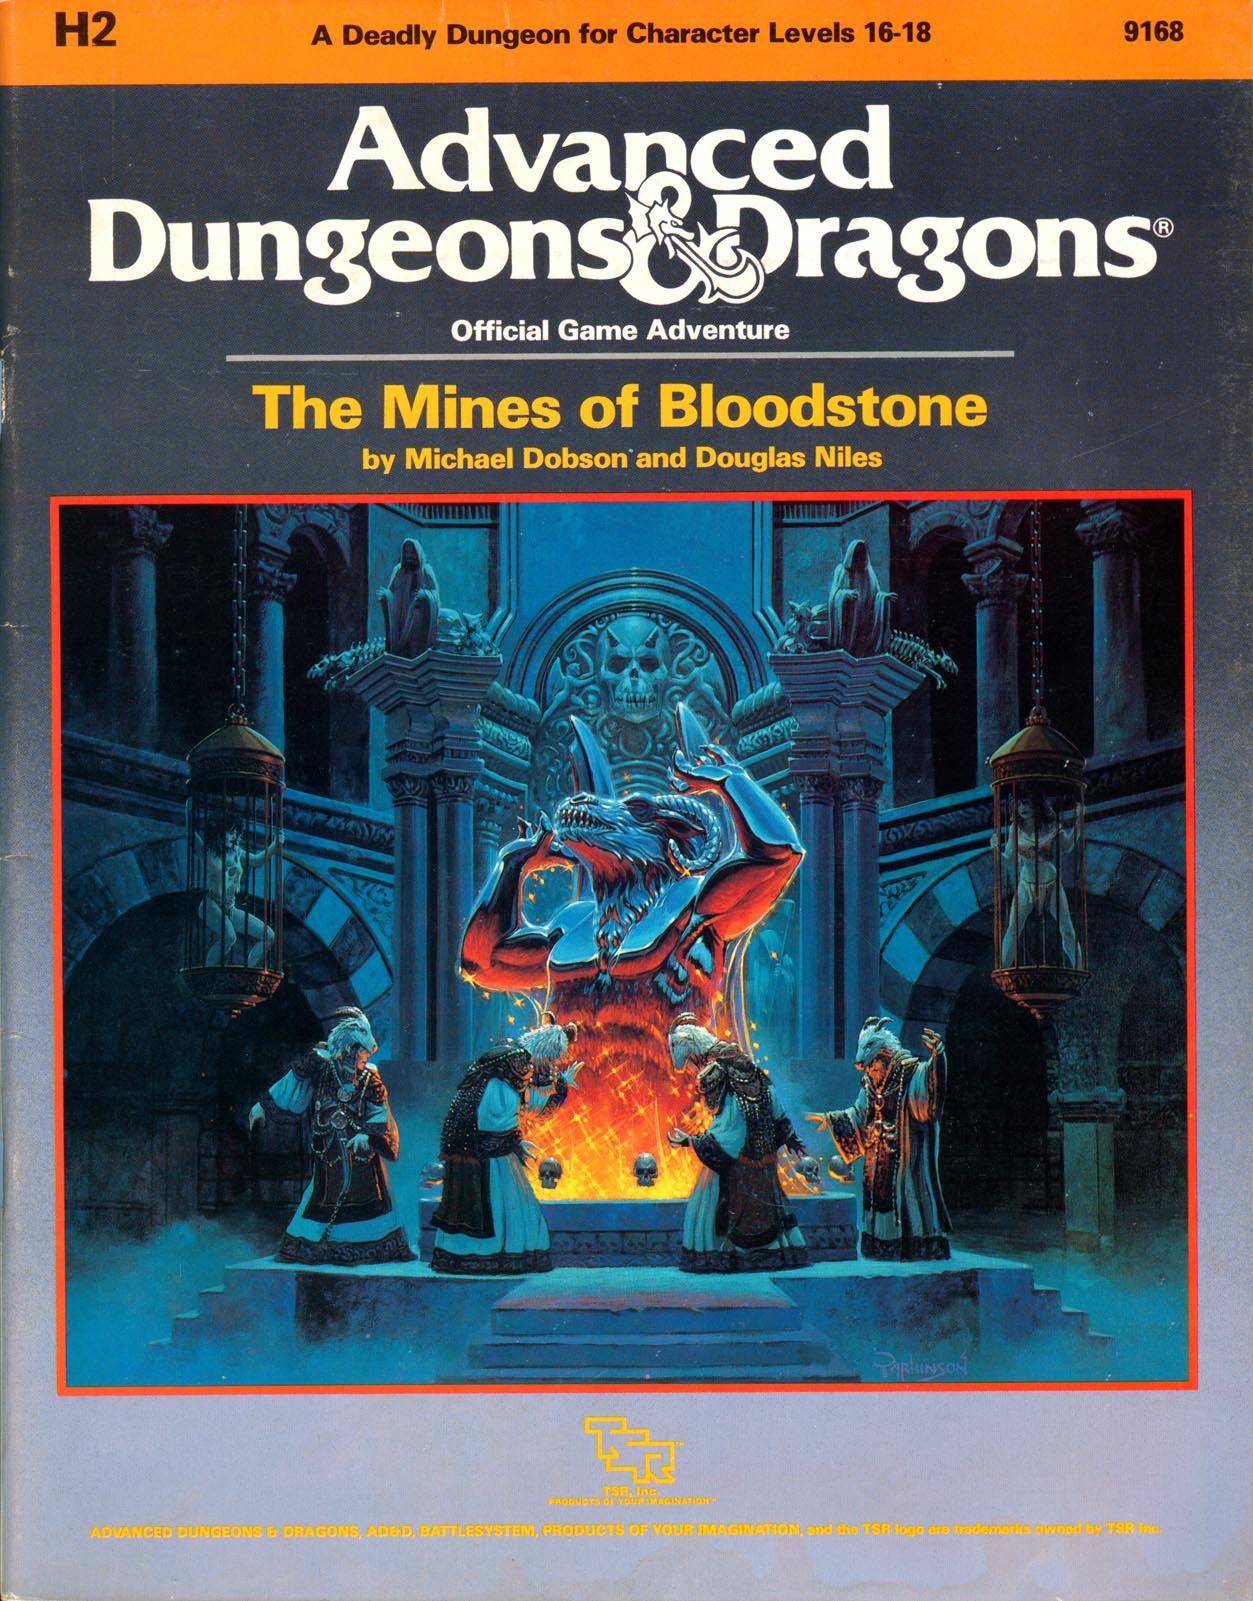 The Mines of Bloodstone